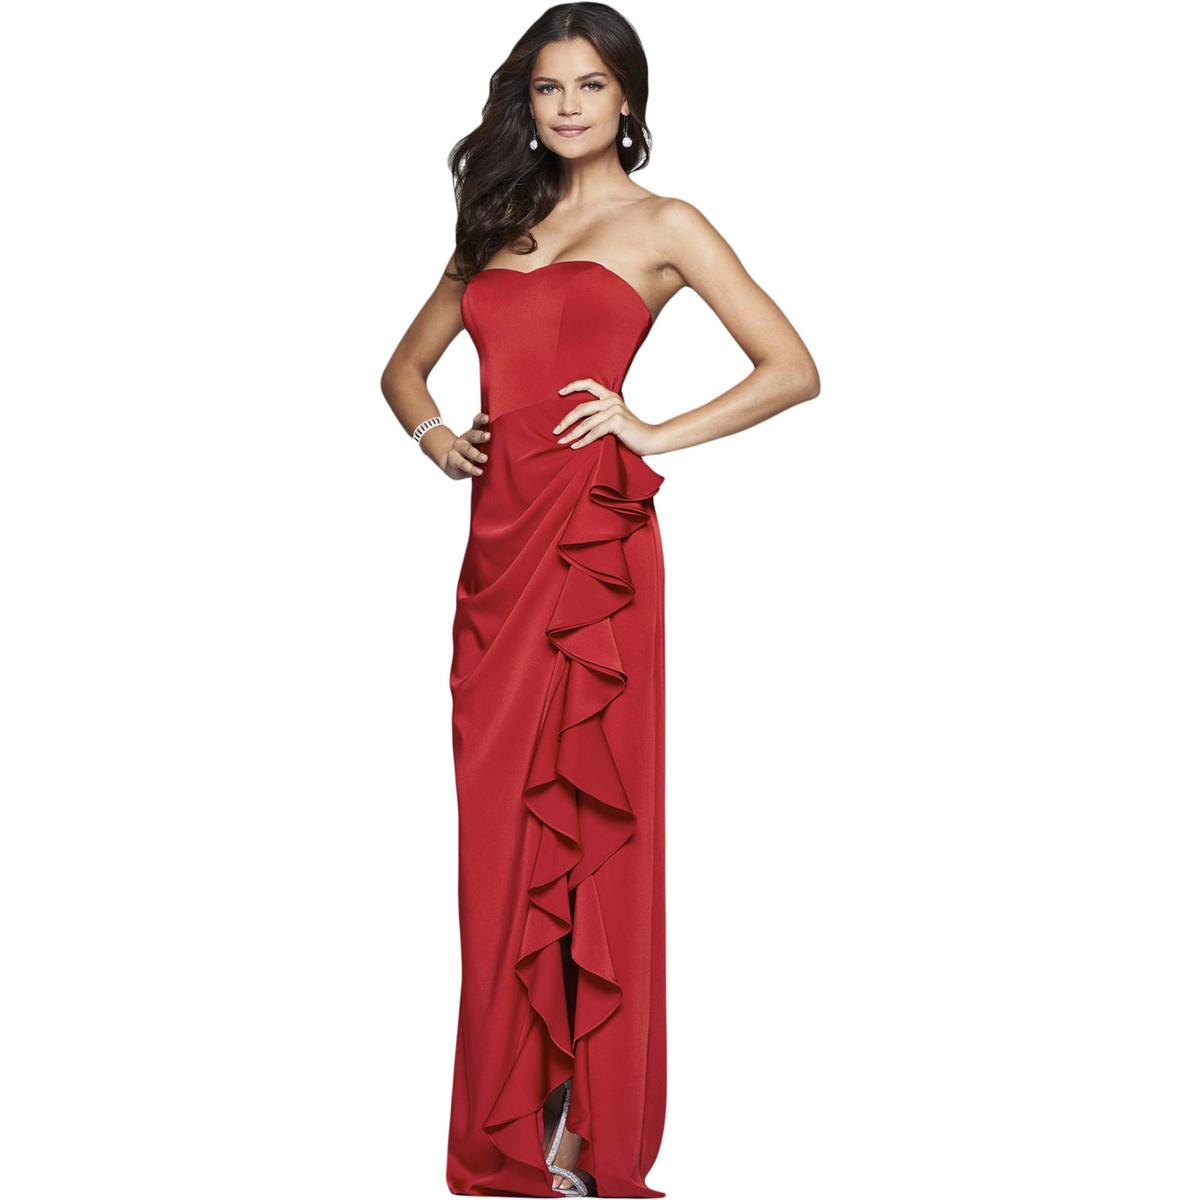 0545ac5653 Details about Faviana Womens Red Satin Prom Formal Evening Dress Gown 6 BHFO  3139